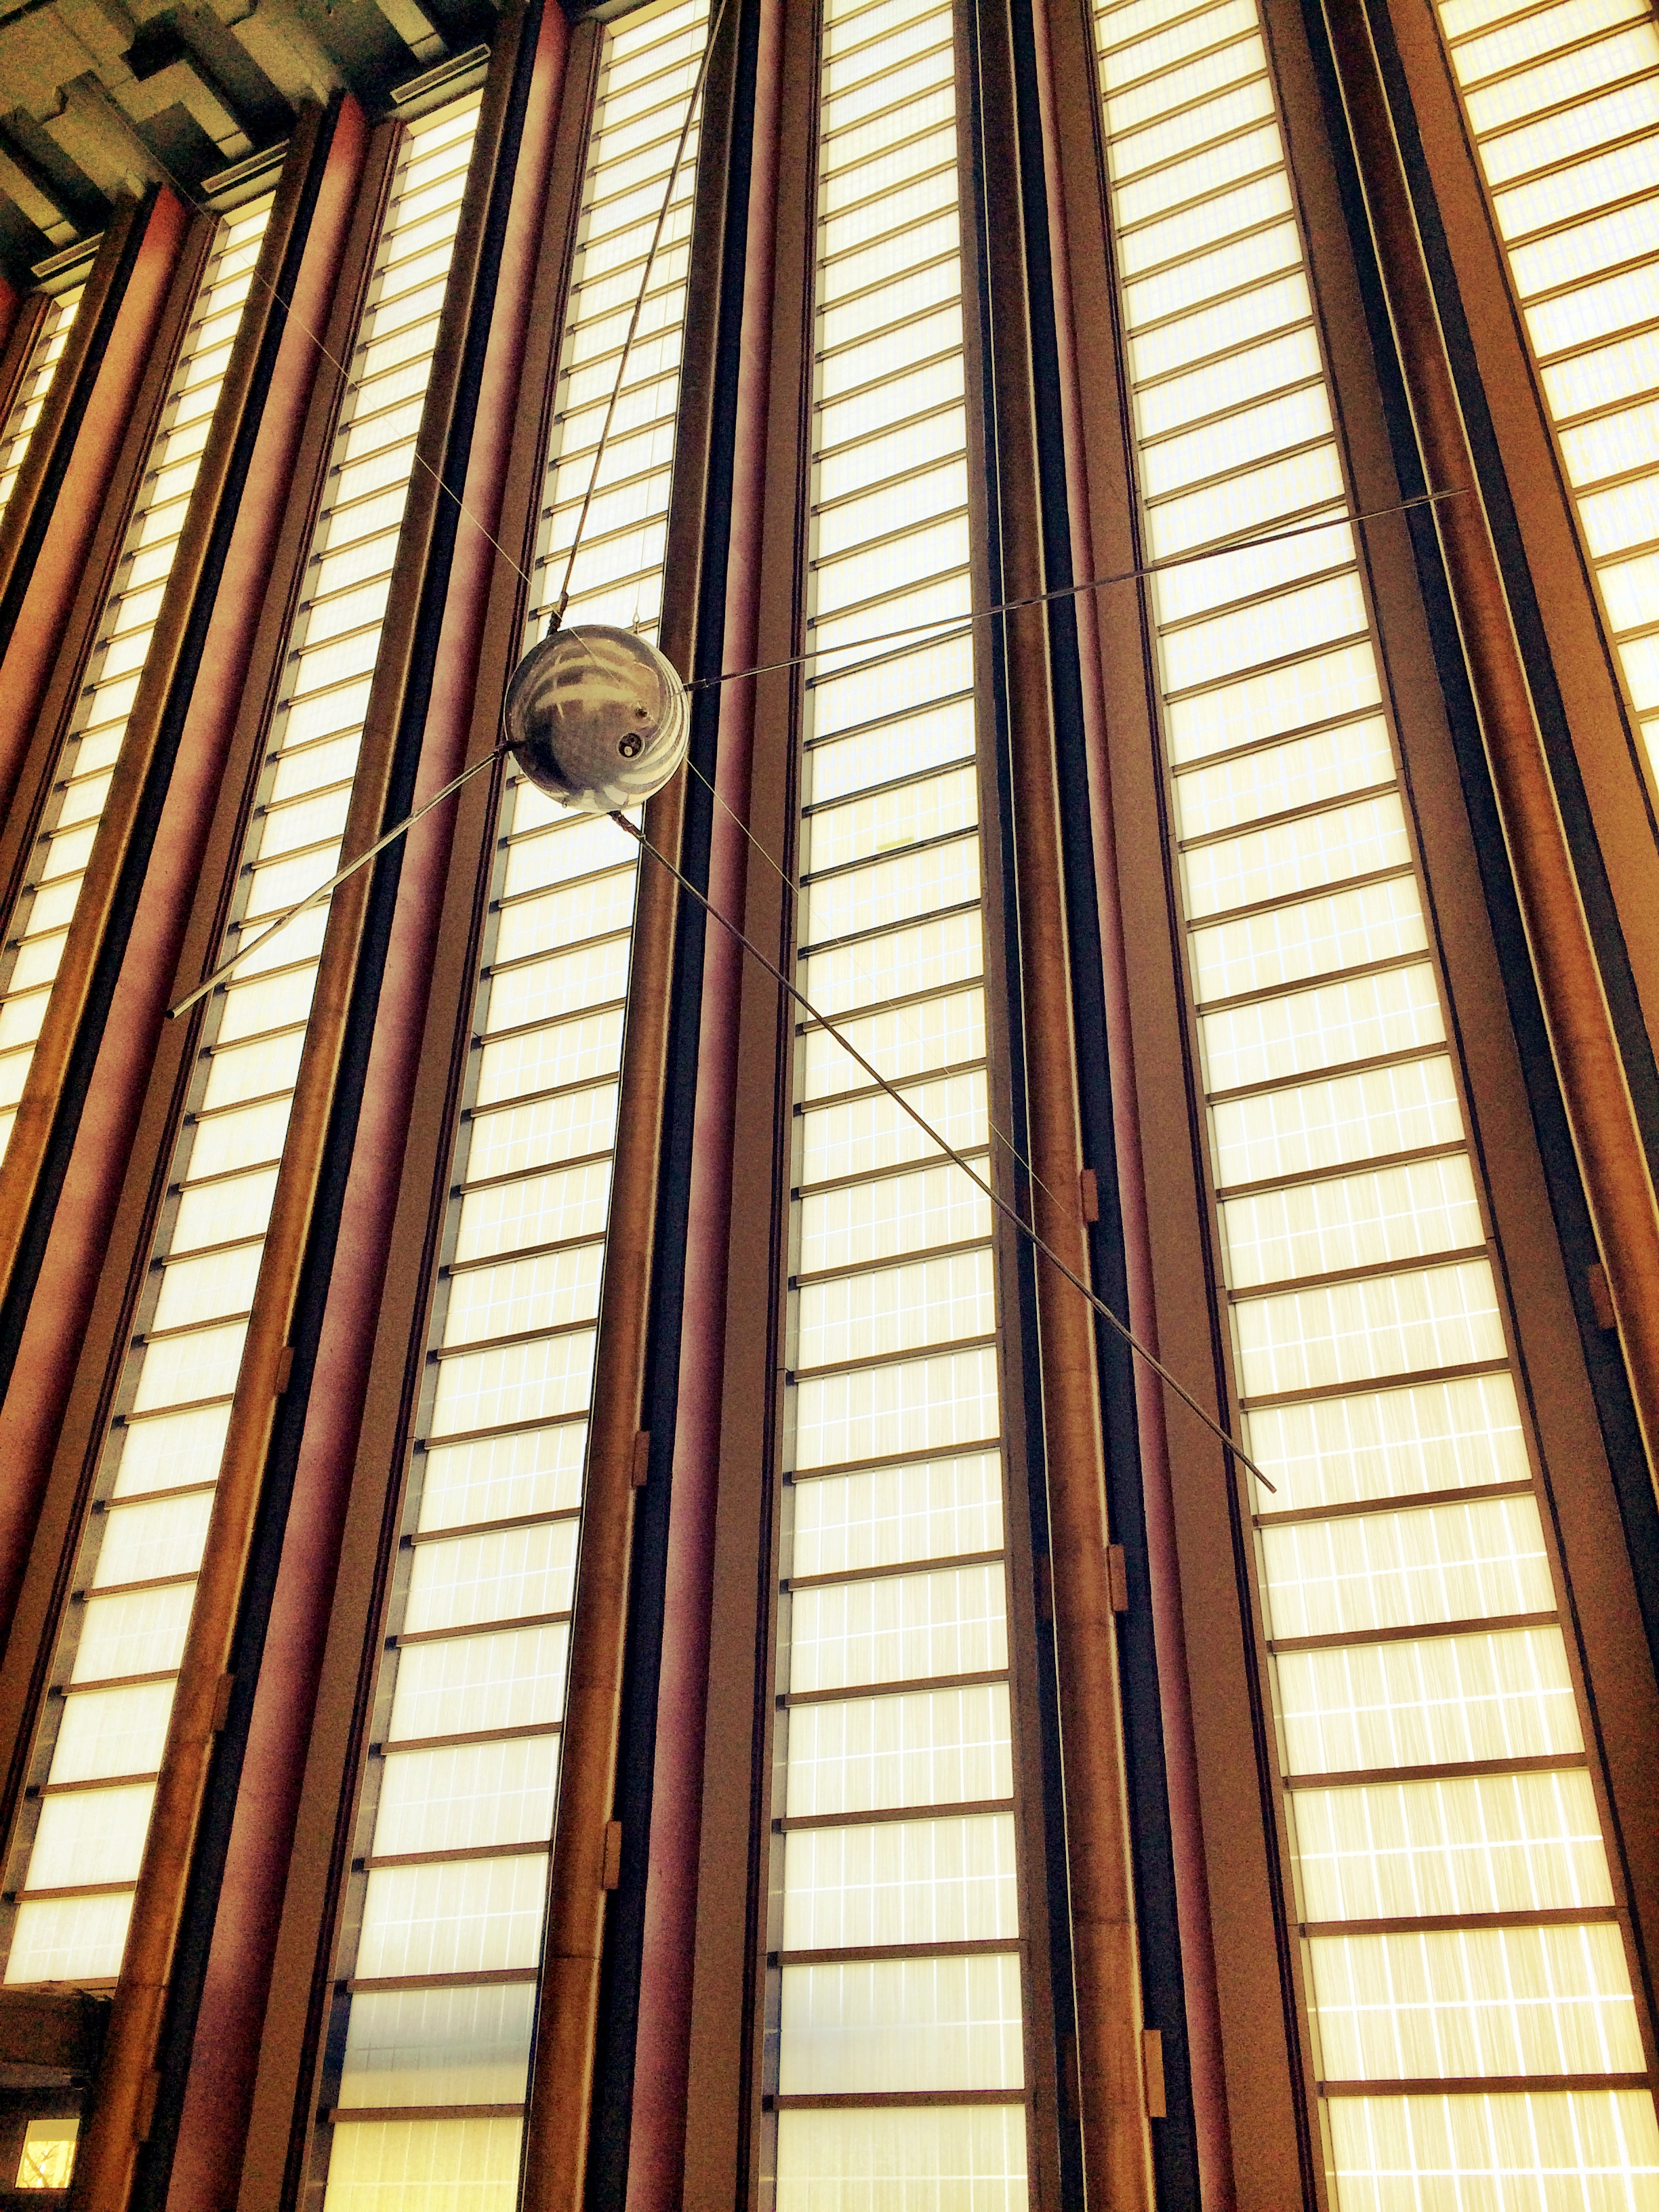 SPACE AGE...a model of Sputnik hangs by the windows of entrance lobby